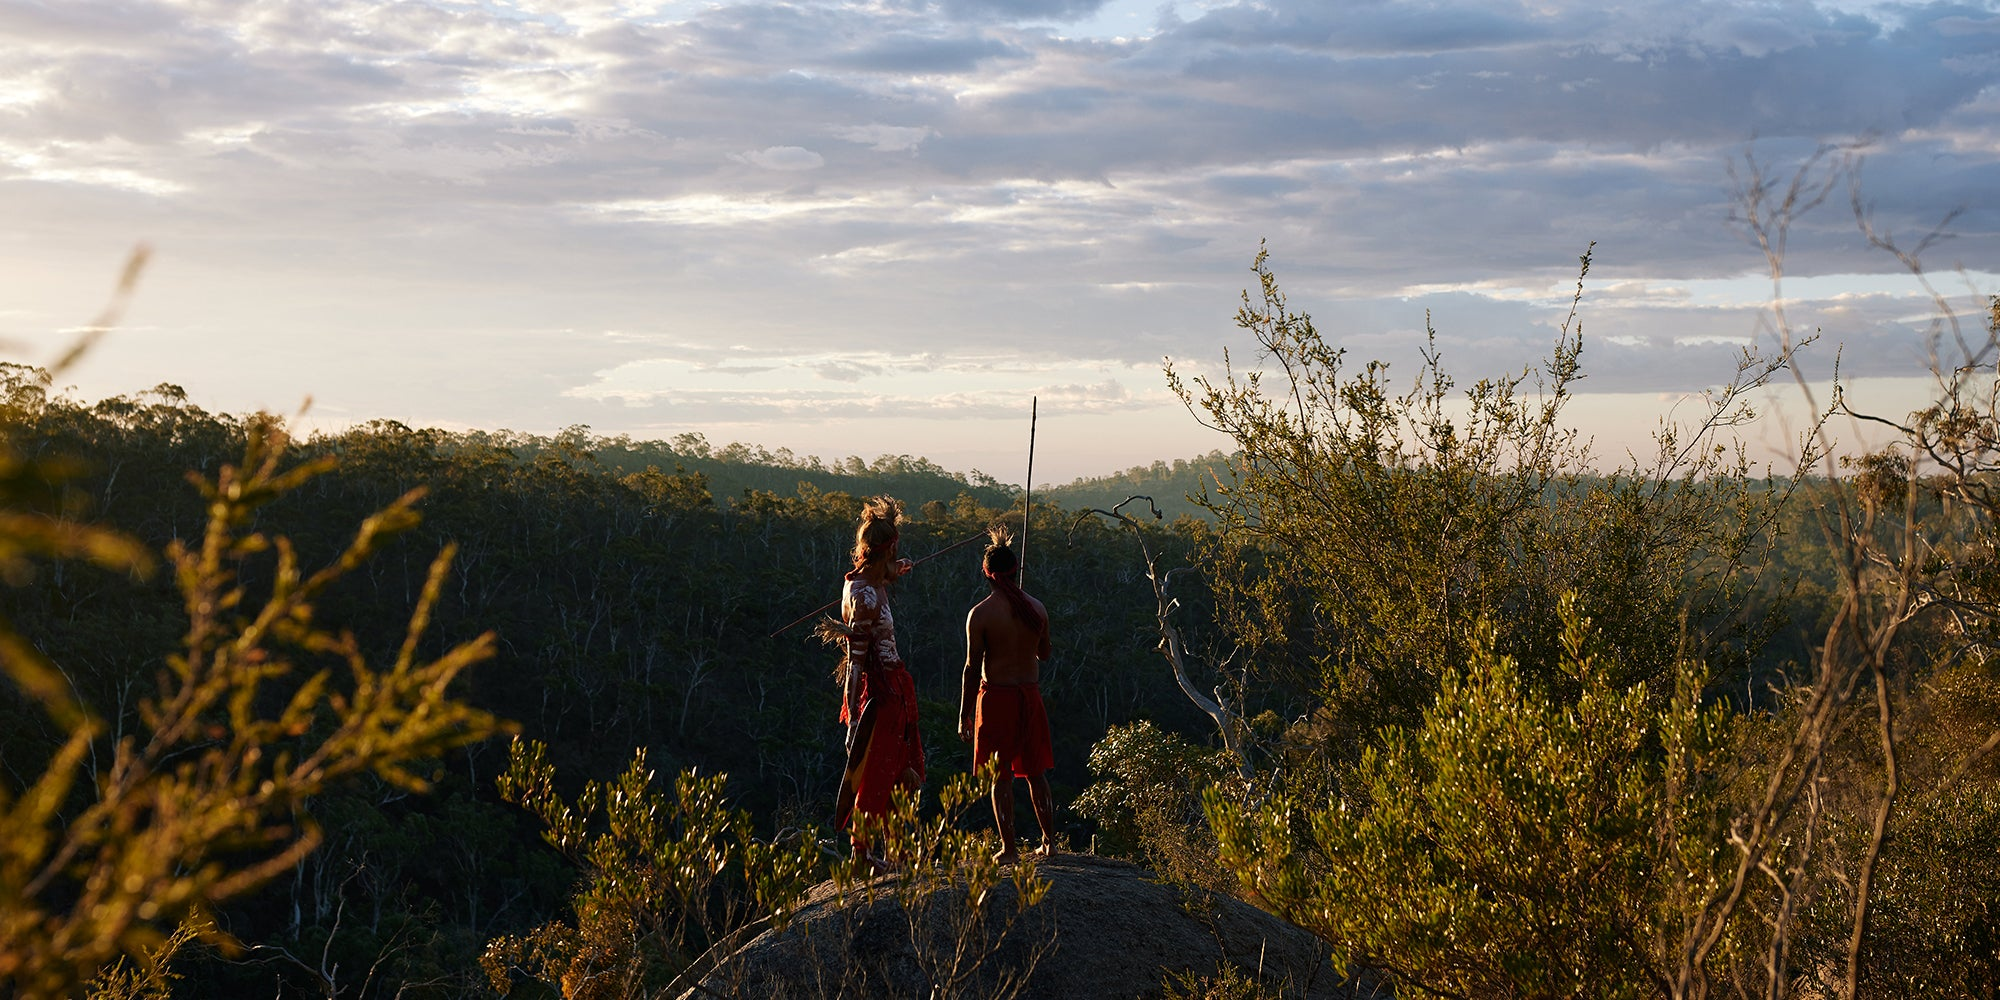 First Nations Men in traditional dress looking over land